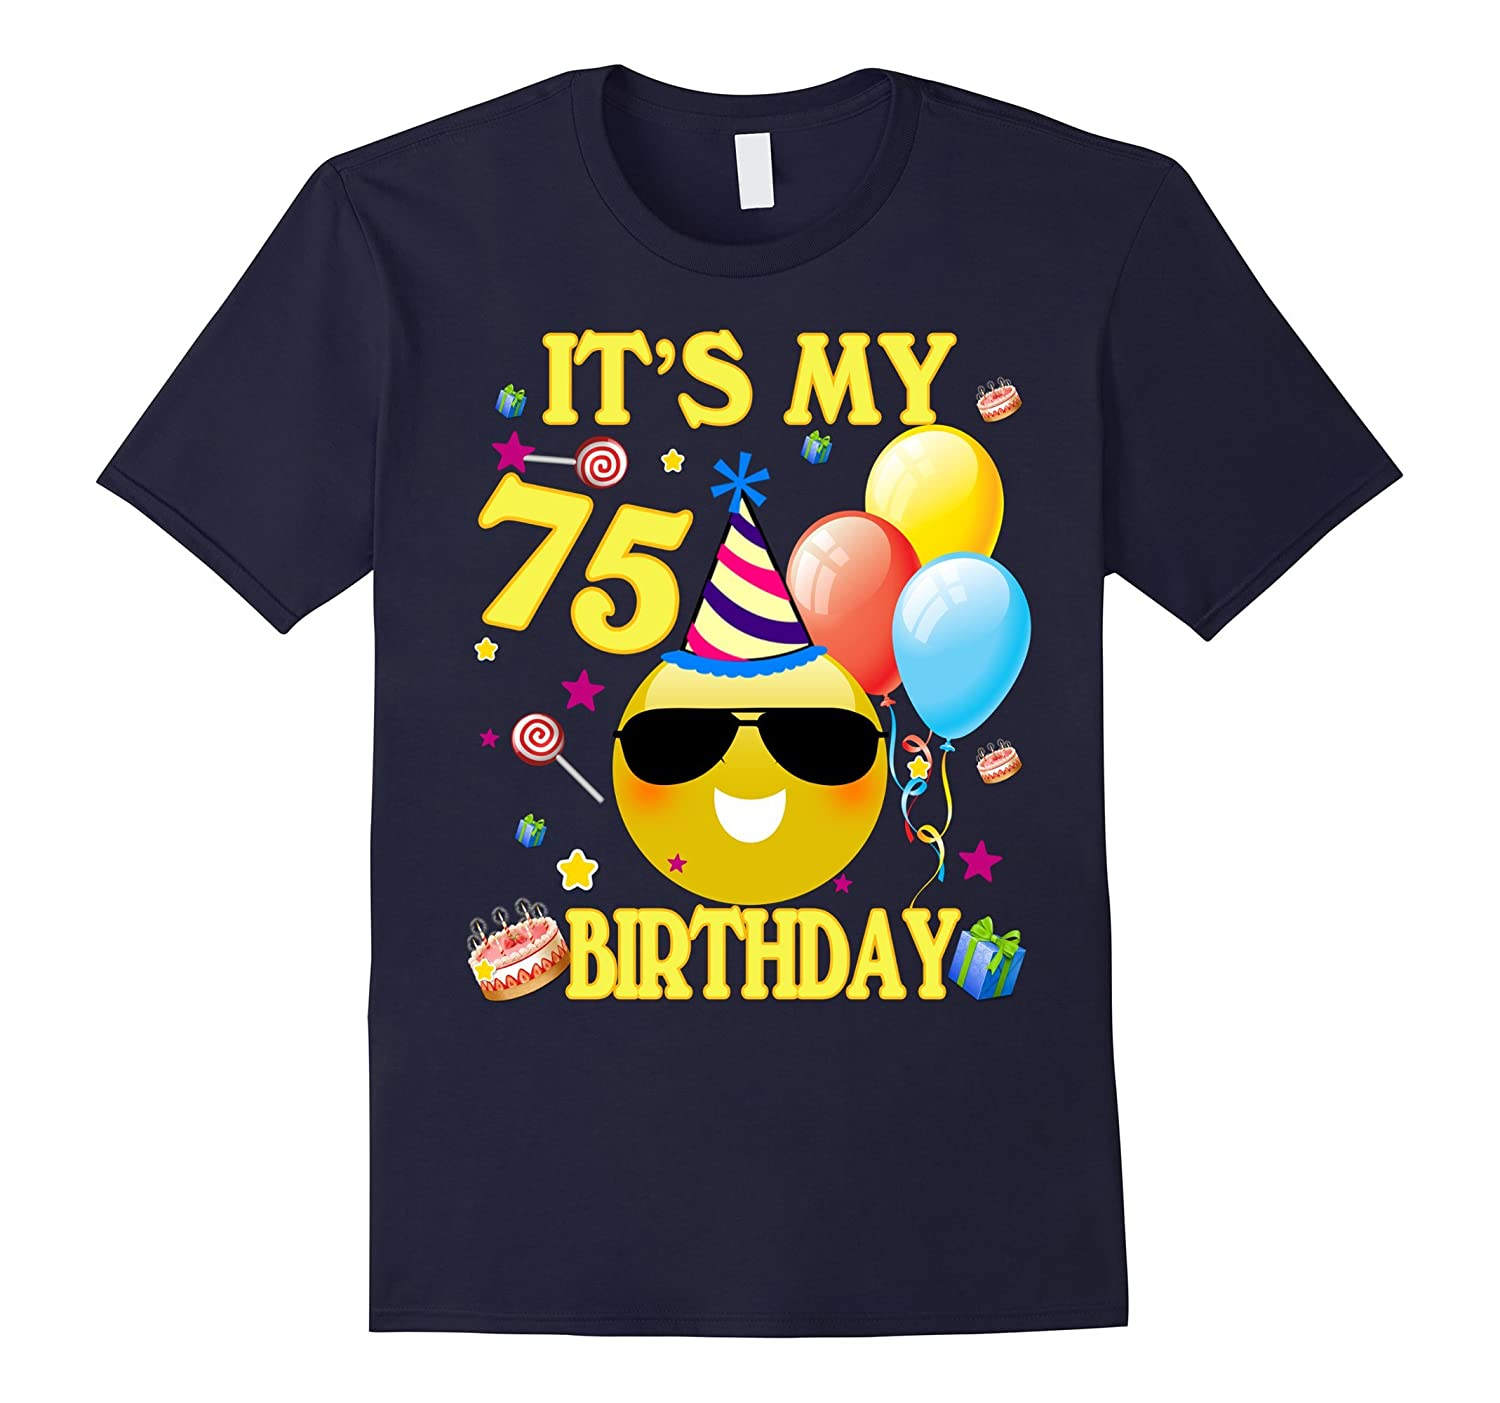 Its My 75th Birthday Shirt 75 Years Old Gift ANZ